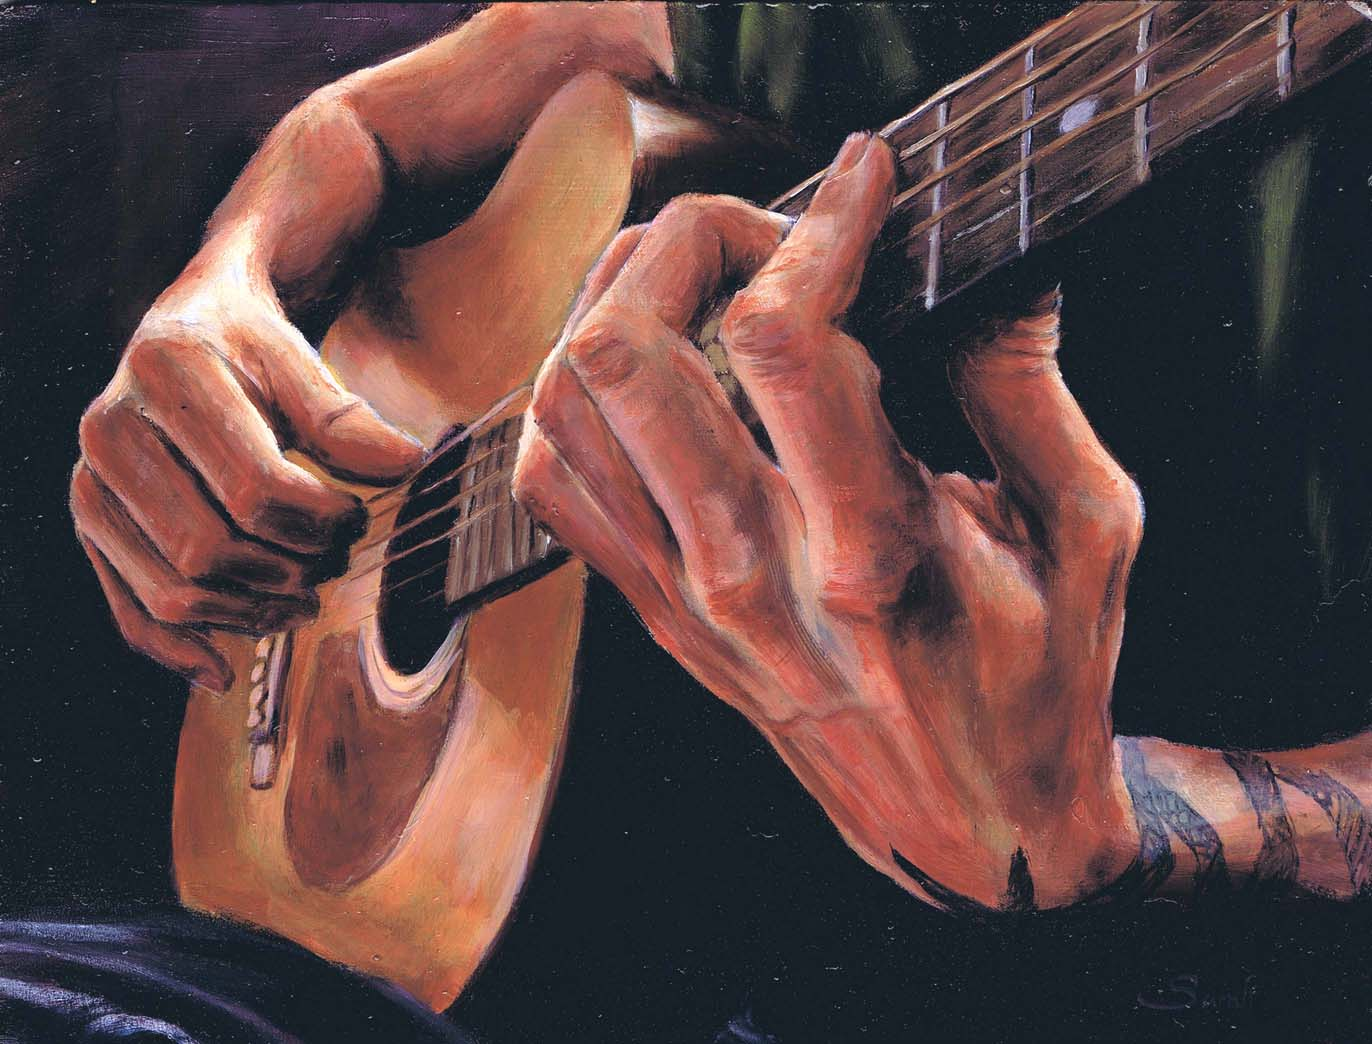 Drawn musician hand holding Painting Hands hands am drawn